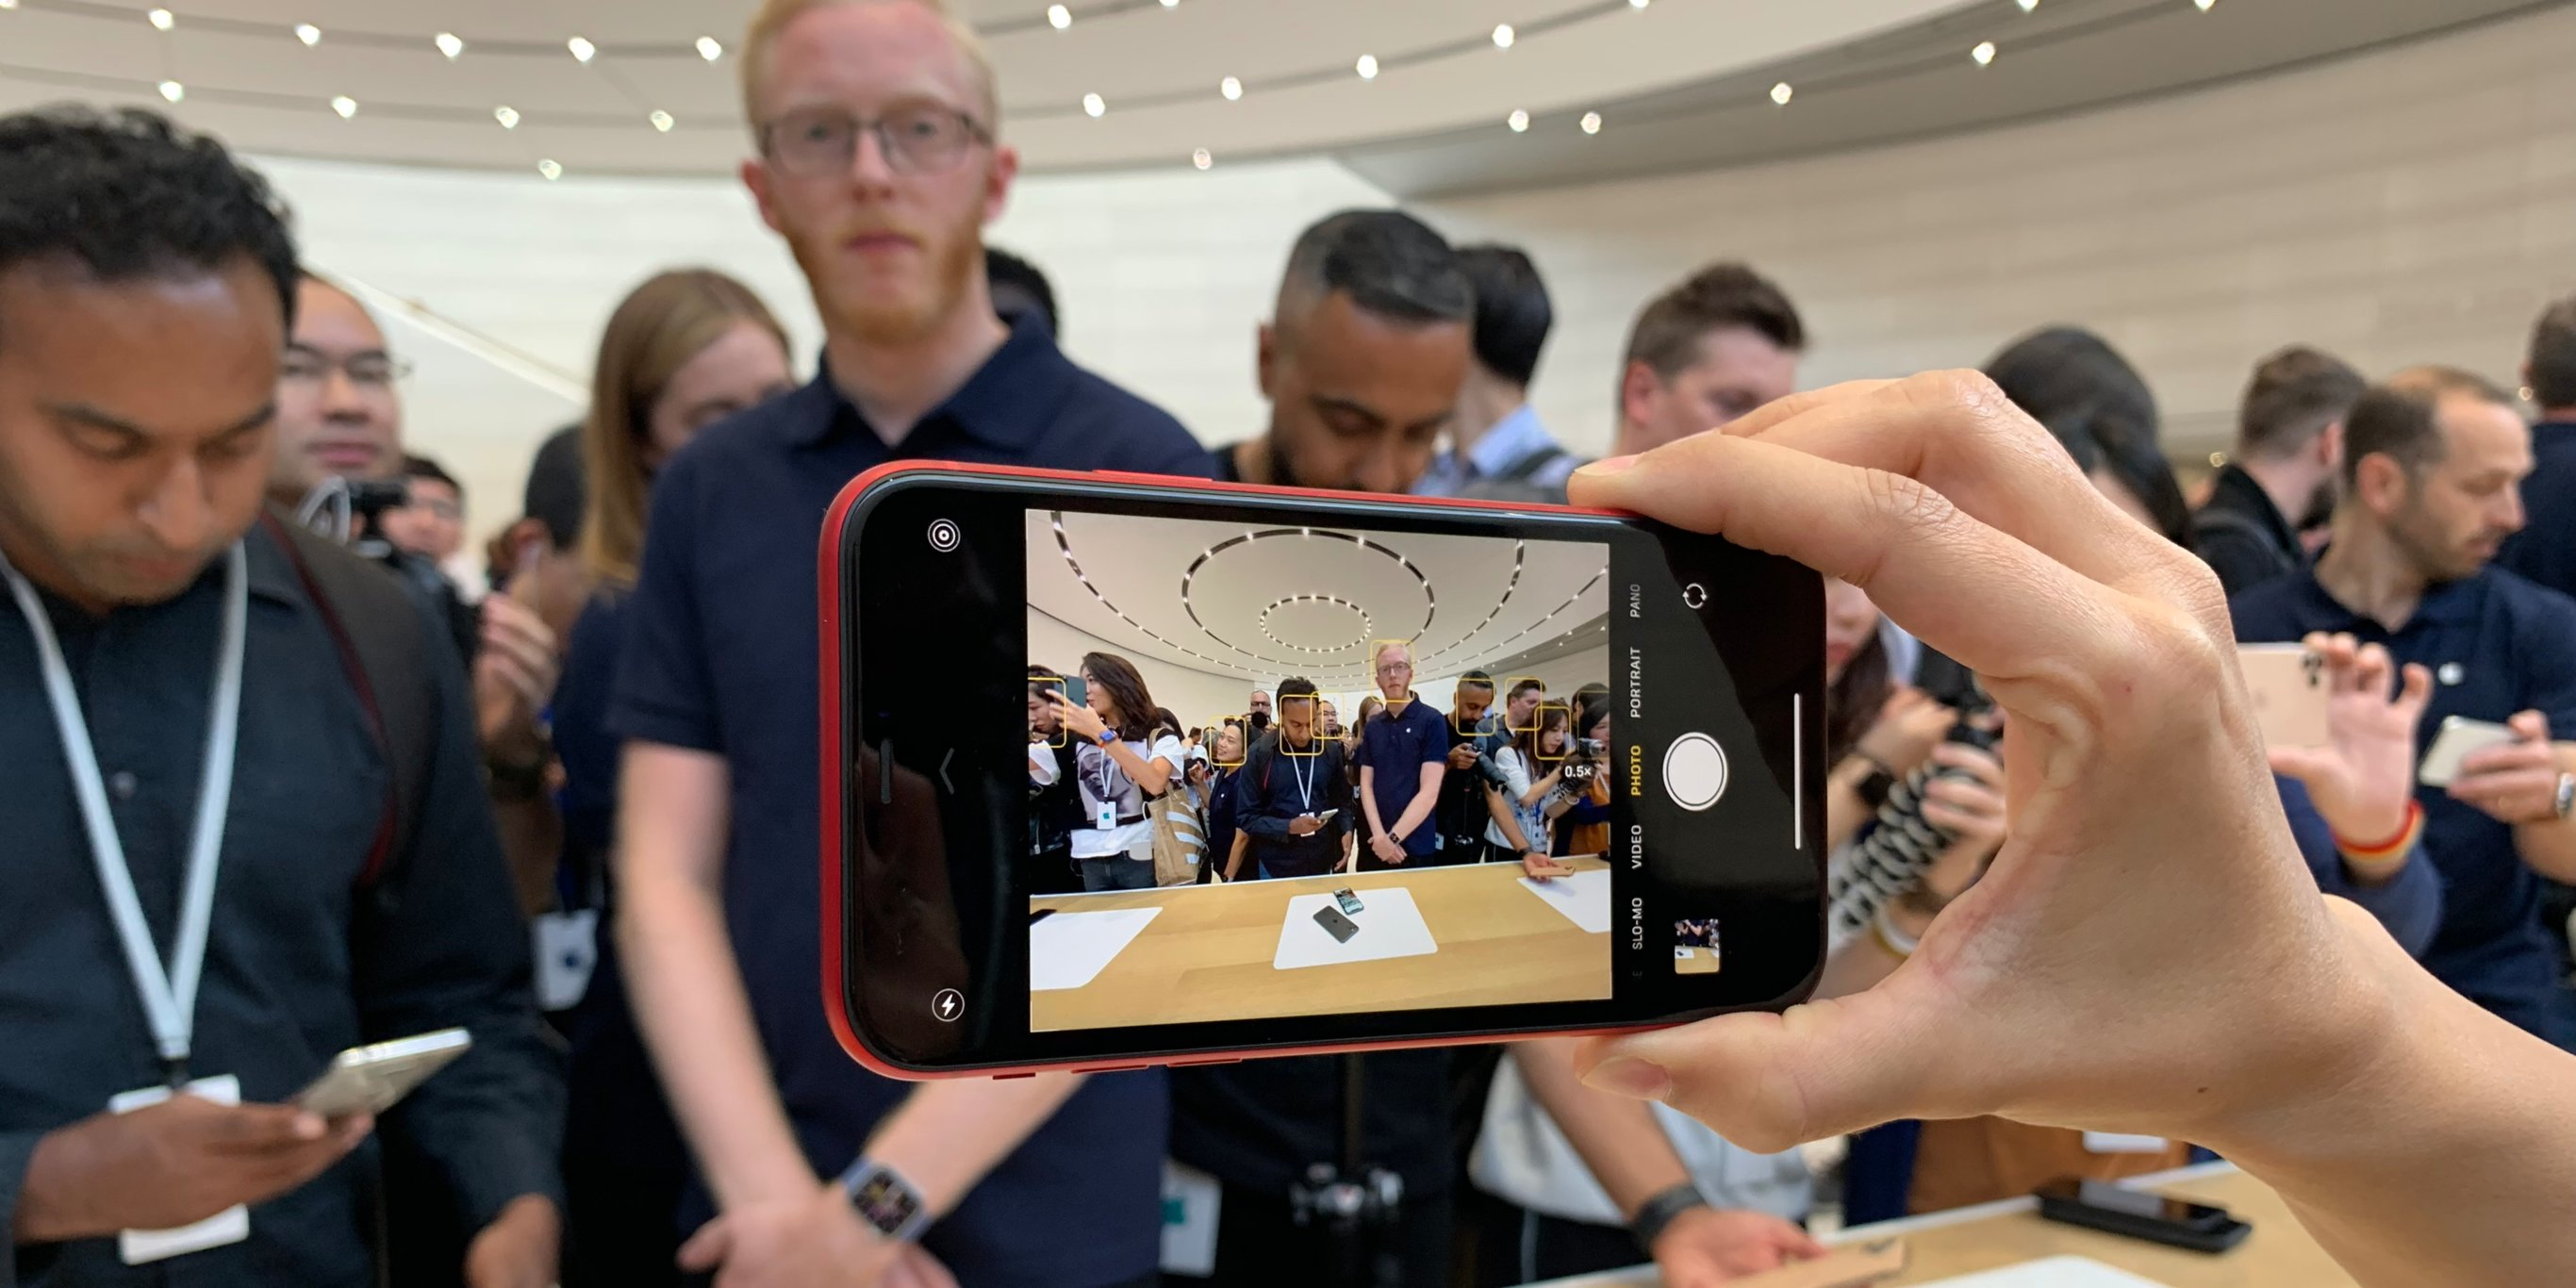 Apple's new iPhone 11 and iPhone 11 Pro are available for preorder starting Friday — here's where to order them (AAPL)